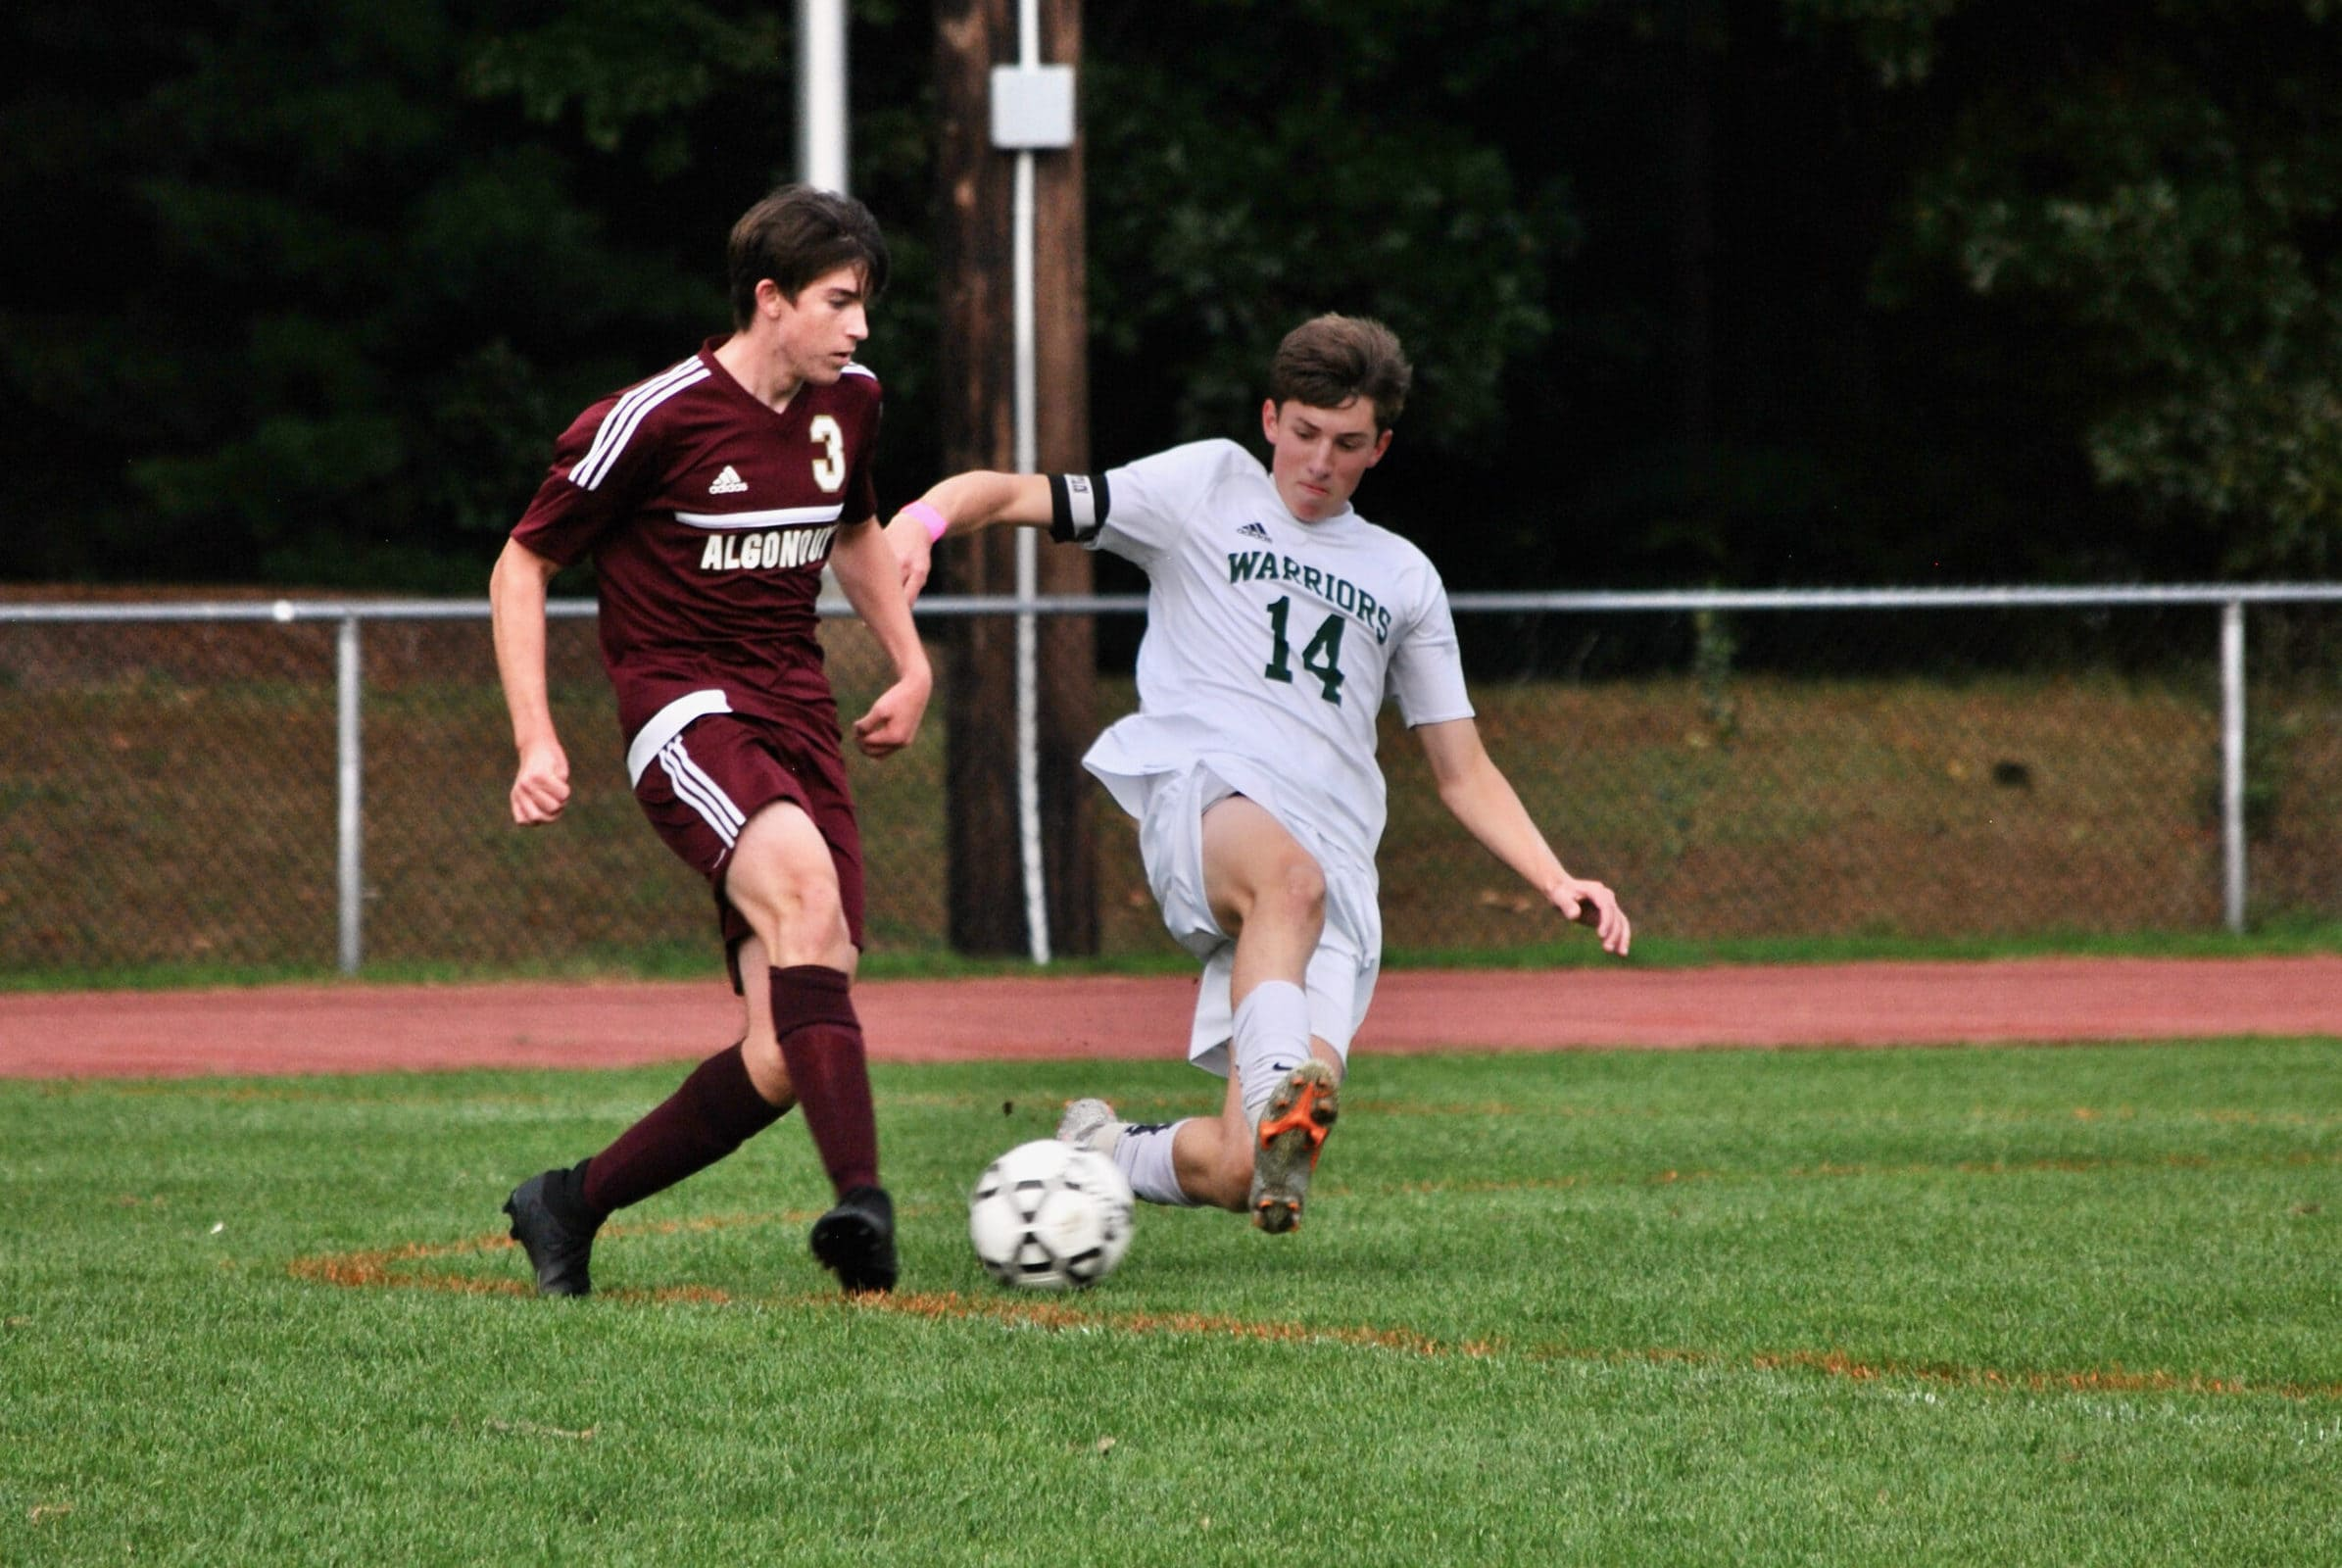 Algonquin's Conor Hoolahan maintains possession as a Tantasqua opponent executes a slide tackle.